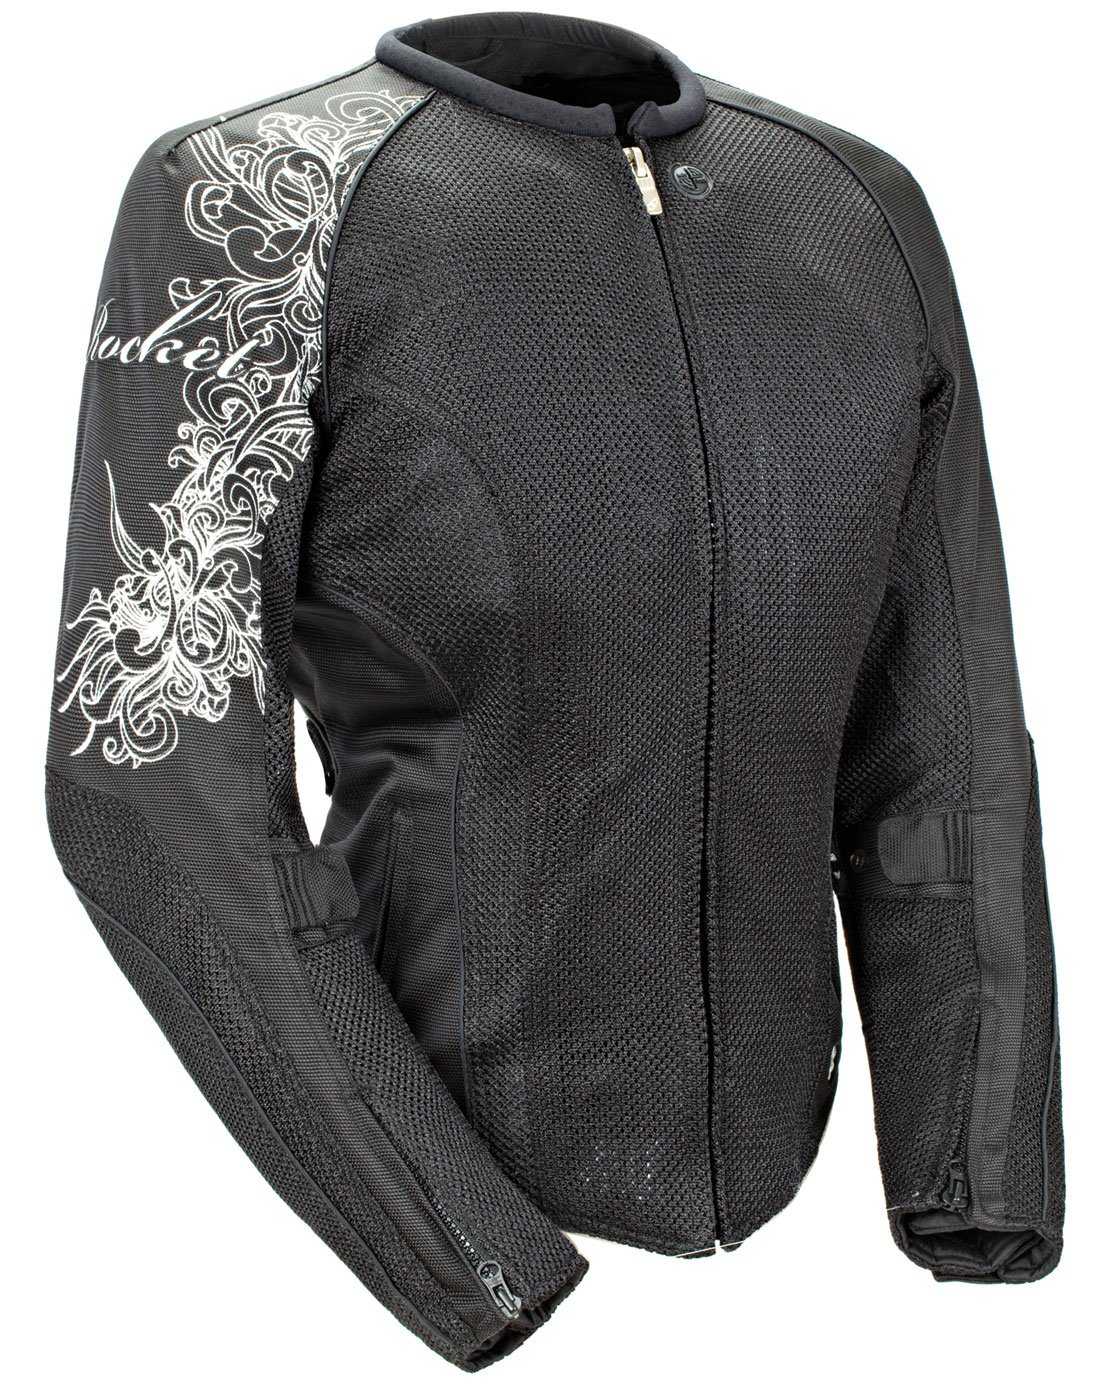 Joe Rocket Cleo 2.2 Women's Mesh Motorcycle Riding Jacket (Black/Black, XX-Large)